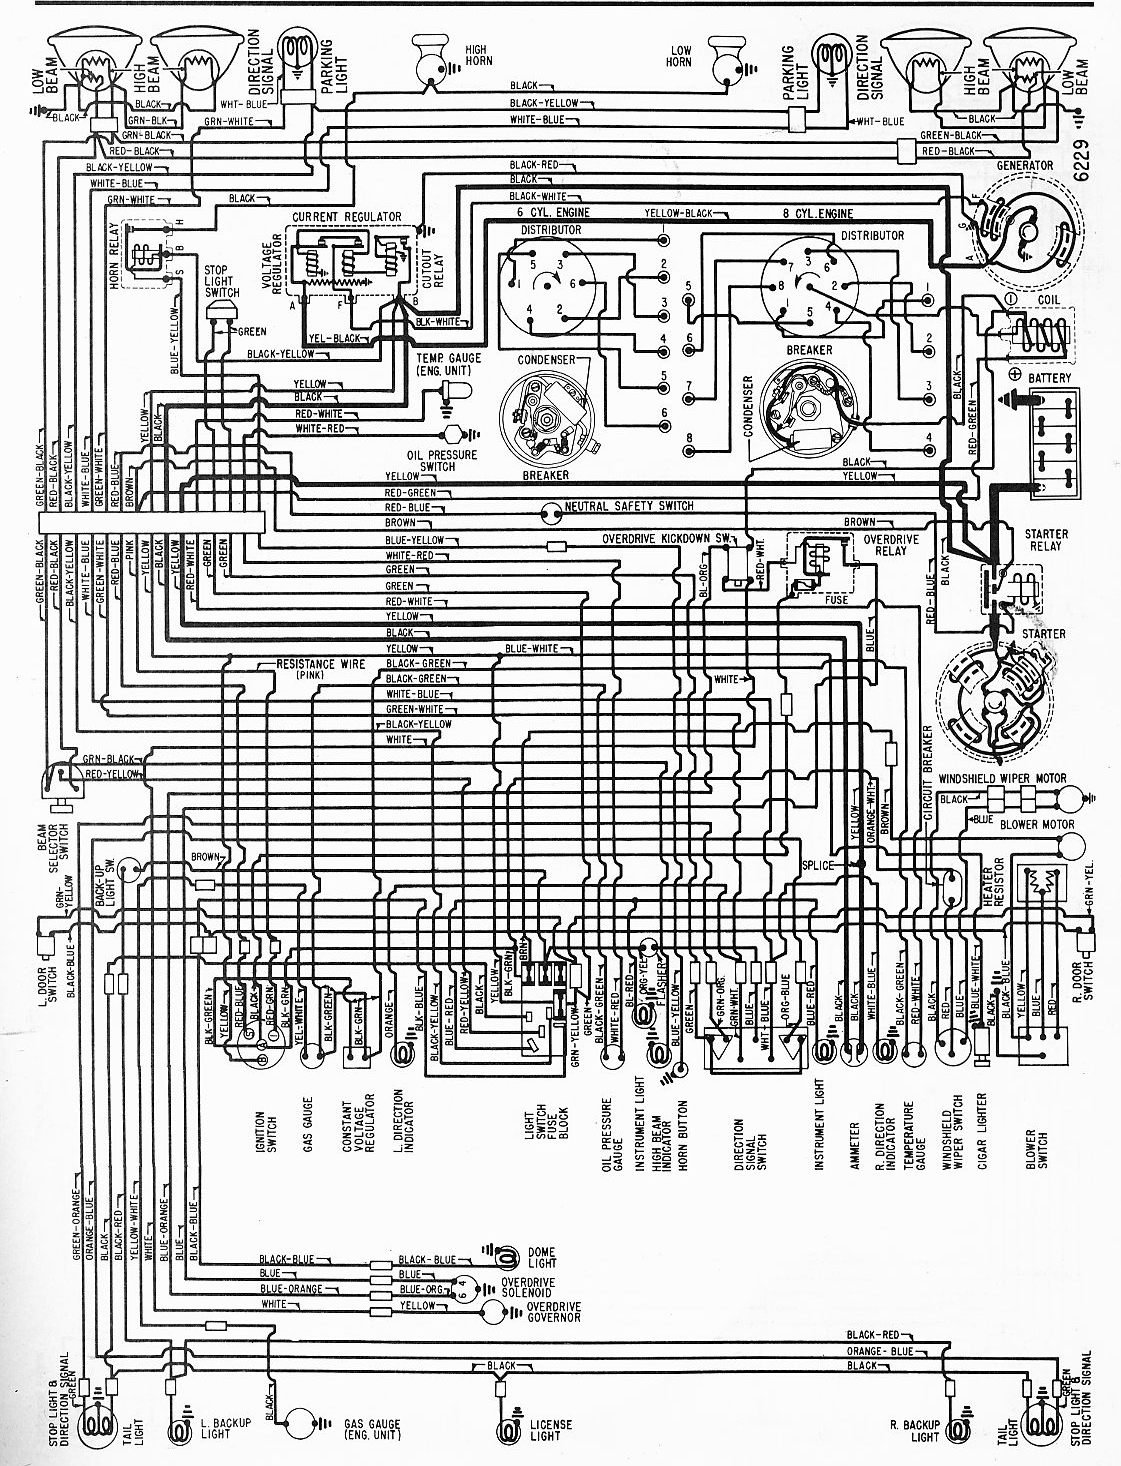 2012 05 02_010337_60 64_wiring_diagram i have a 62 fairlane and heard something pop while changing a fuse fuse box diagram for 1972 chevy truck c10 at virtualis.co